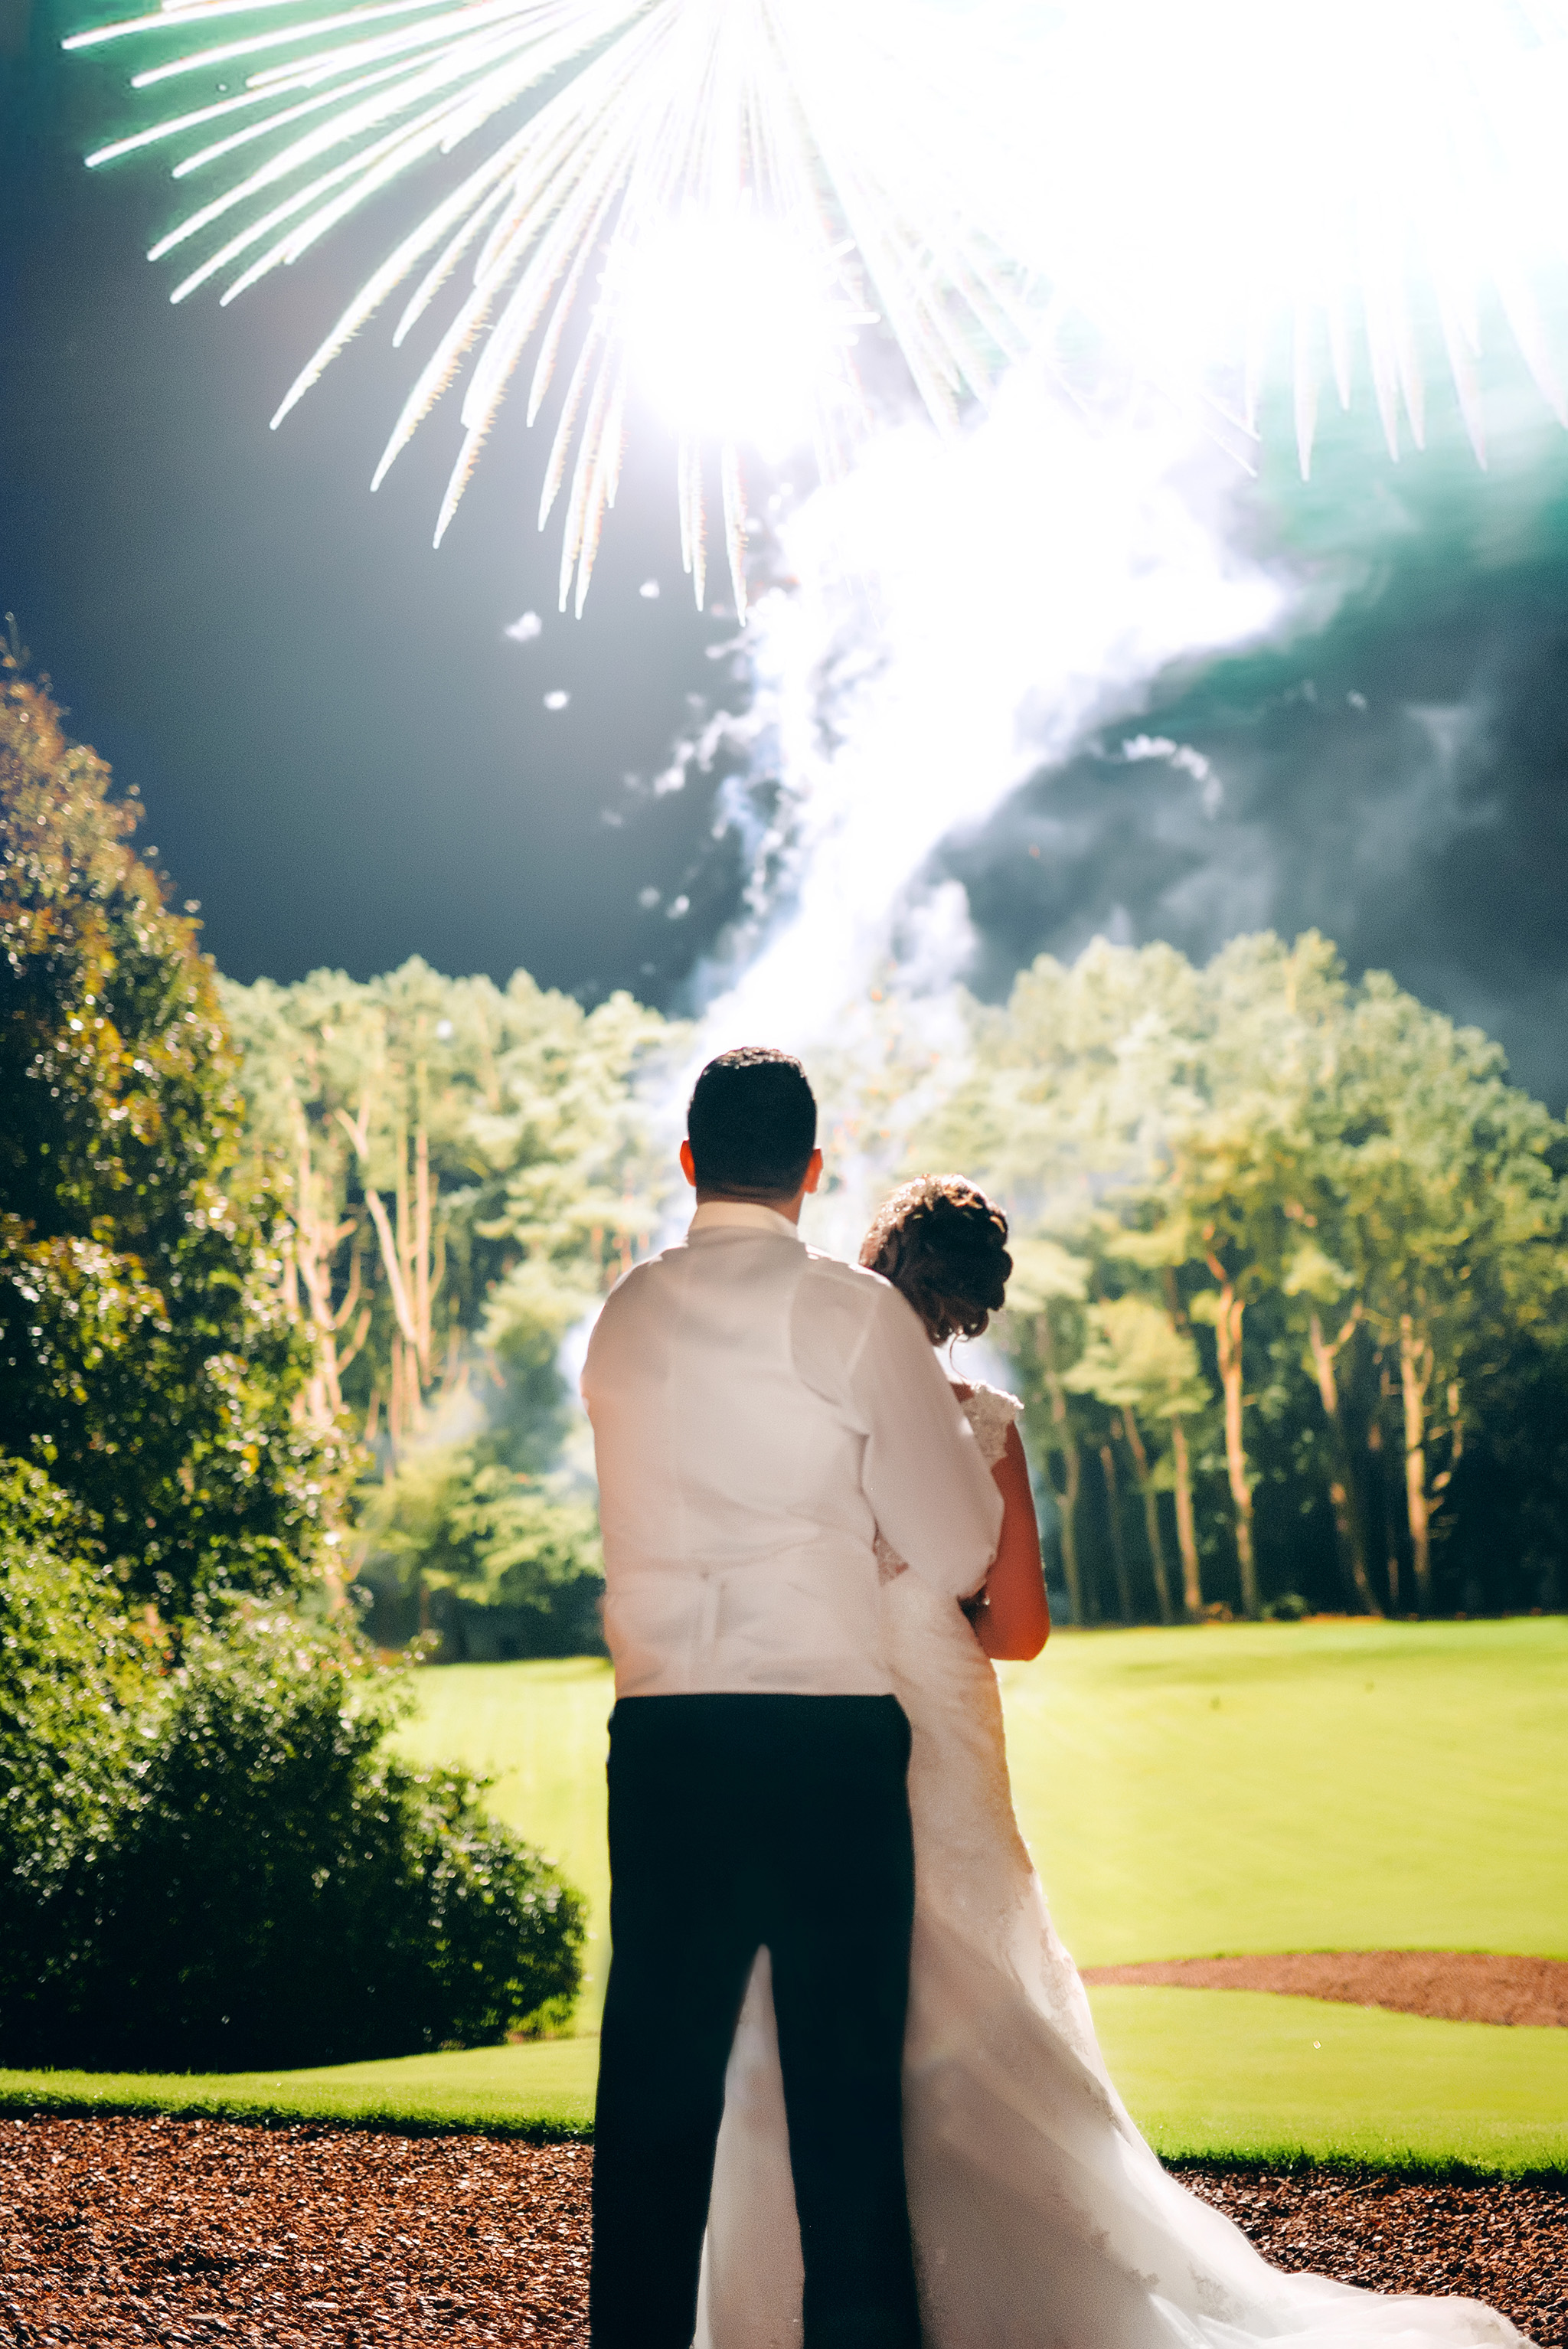 Wedding couple watching fireworks